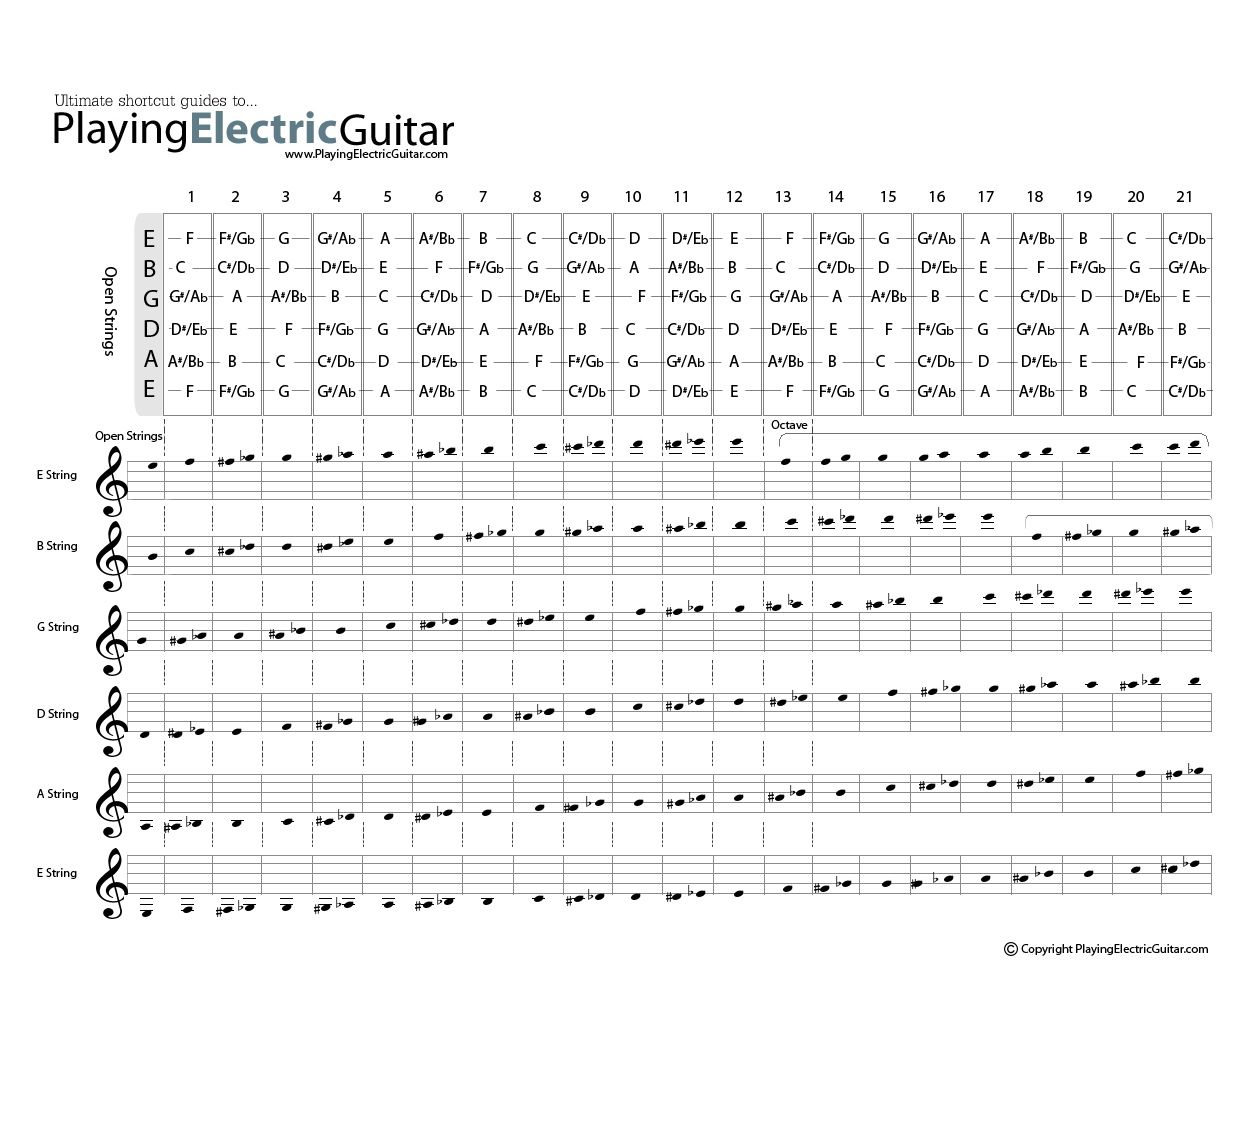 Guitar Fretboard Chart With Musical Notation Guitar Pinterest